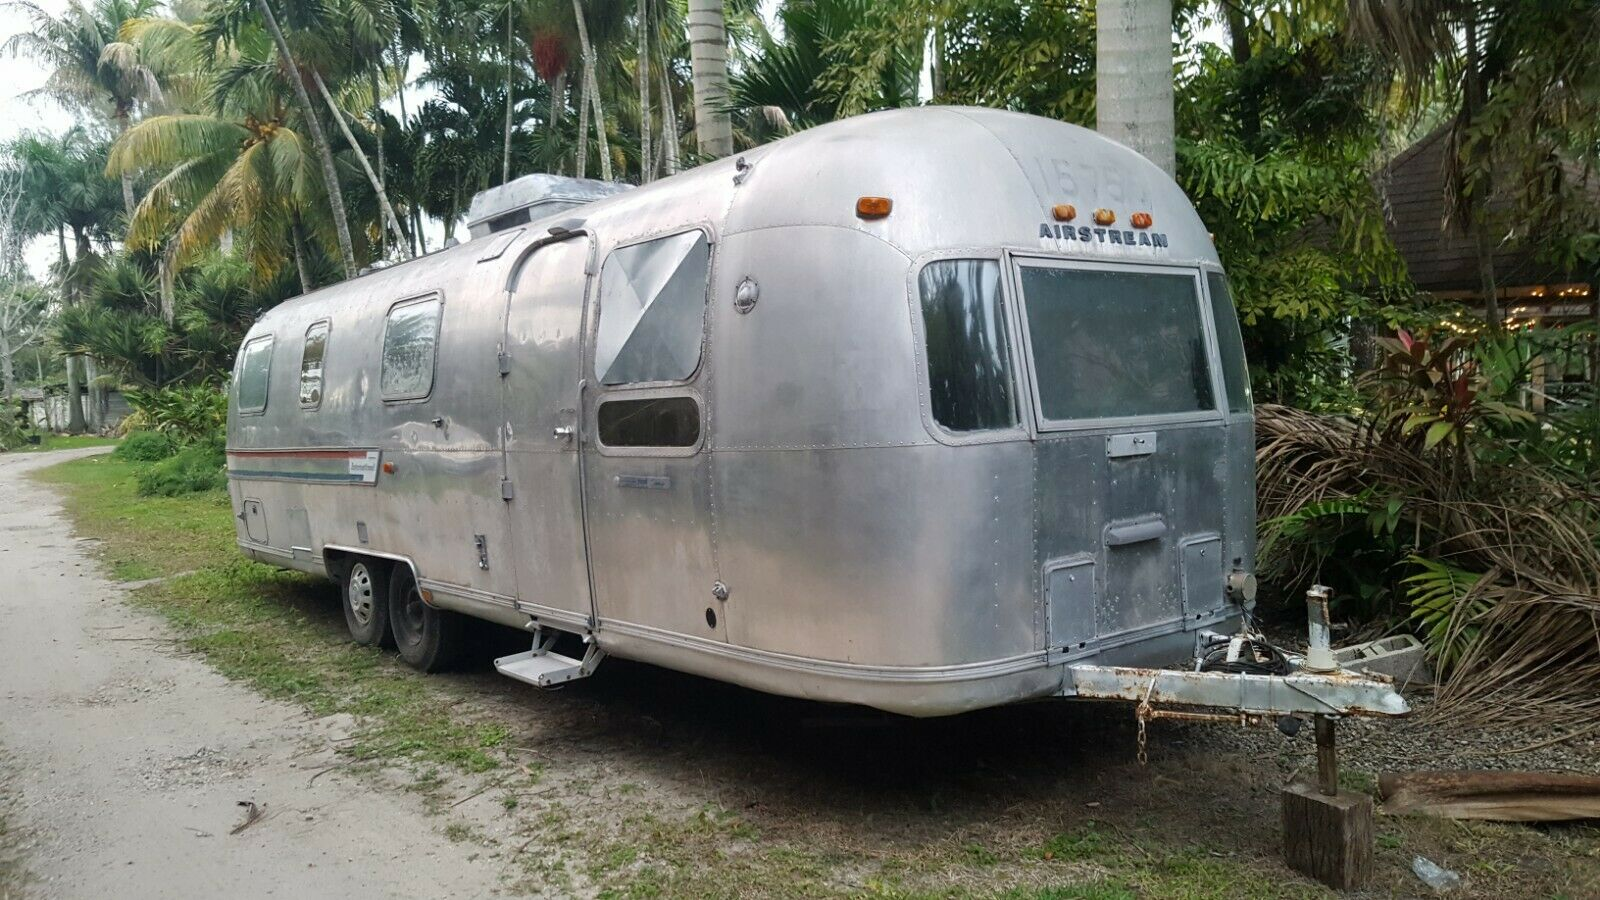 solid 1978 Airstream SOVEREIGN camper